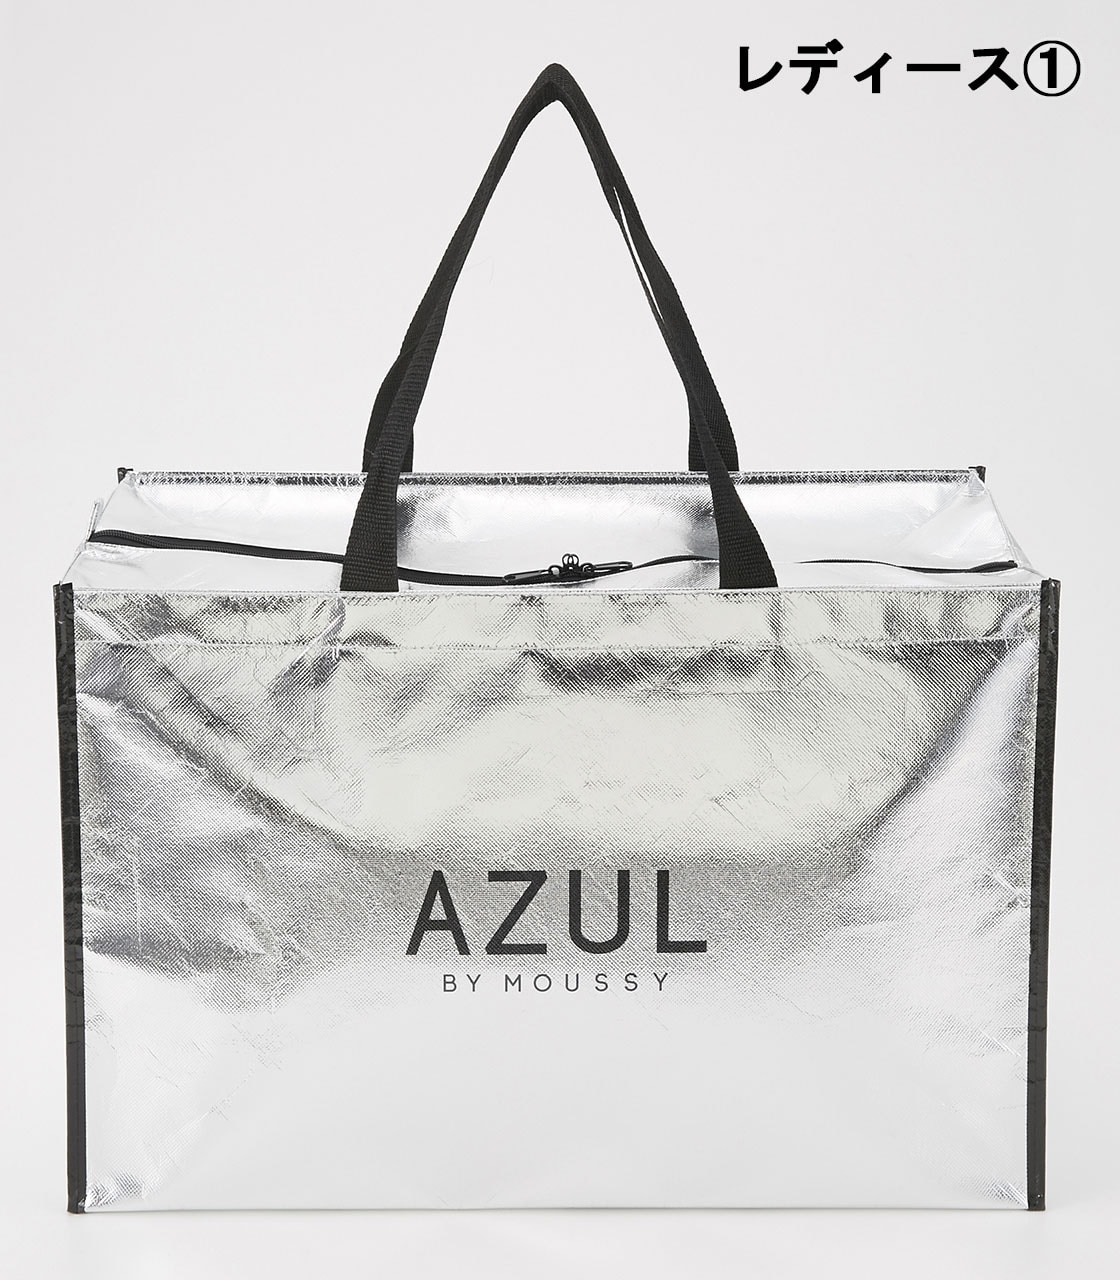 【AZUL BY MOUSSY】2018 NEW YEAR BAG LD10000